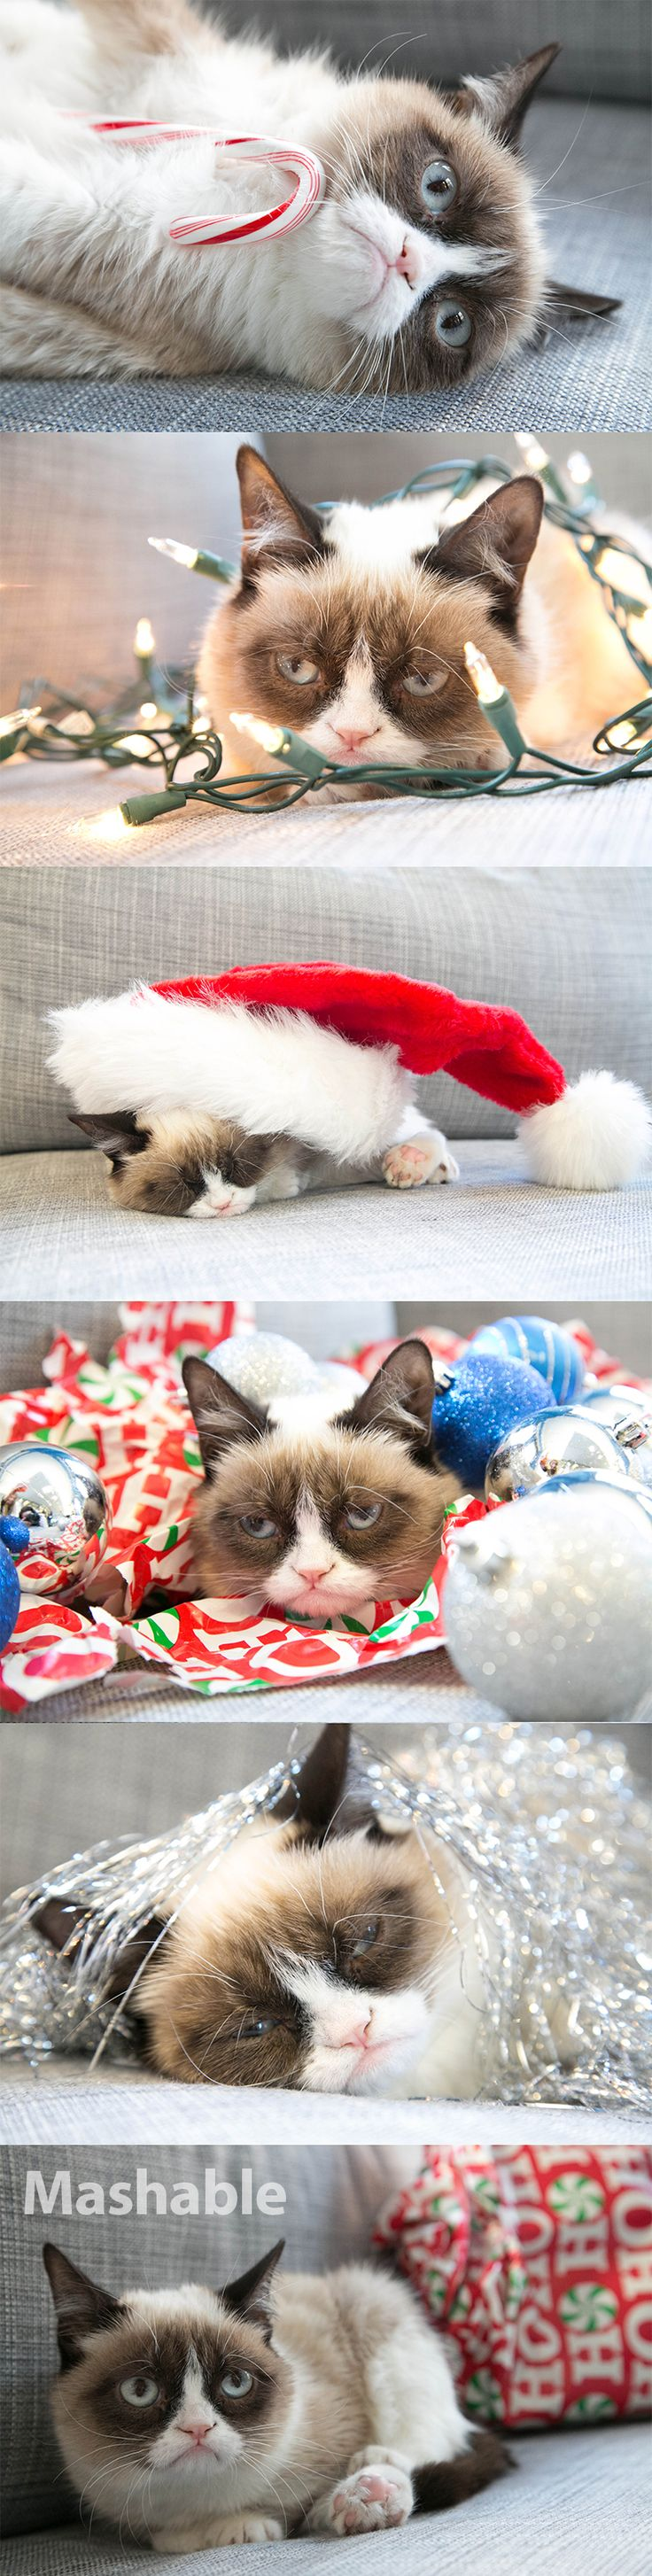 Grumpy Cat is not very excited about the holidays. #Tard #TardarSauce #GrumpyCat